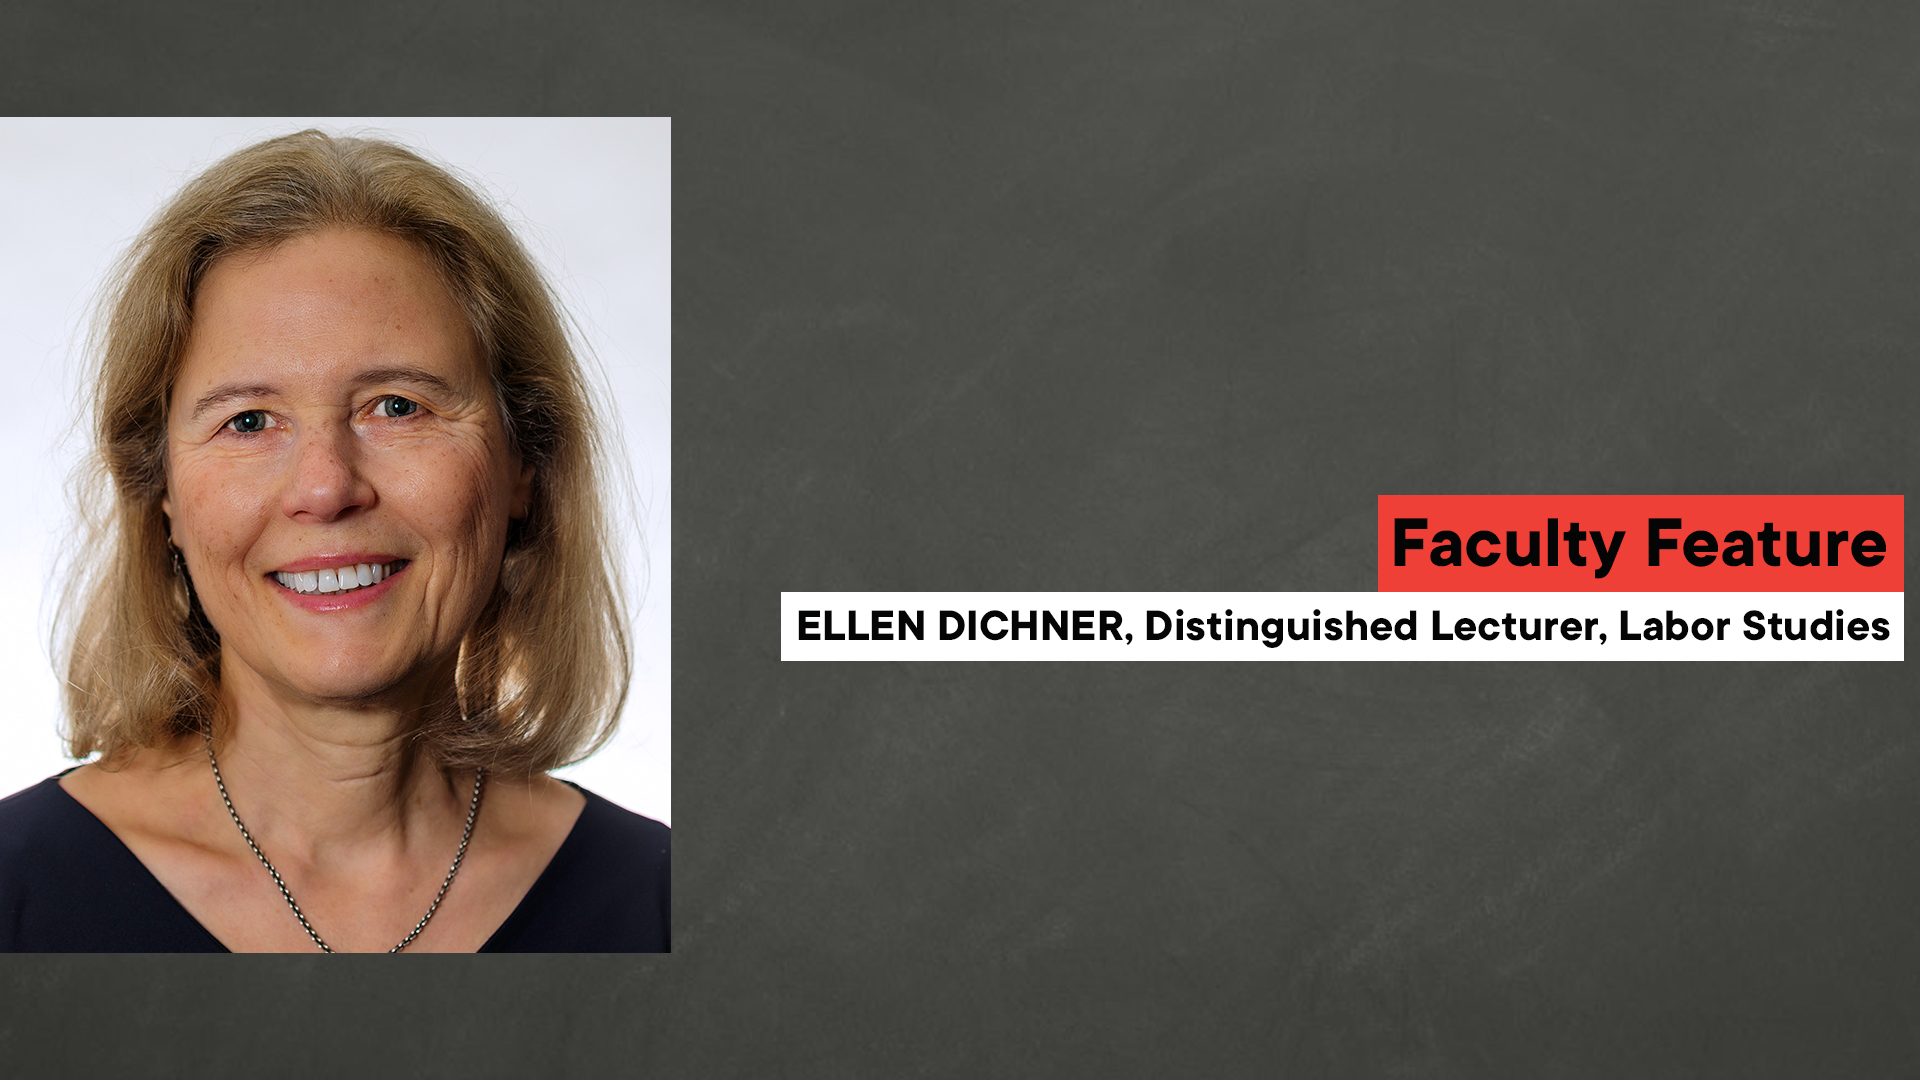 Introducing new faculty Distinguished Lecturer in Labor Studies, Ellen Dichner